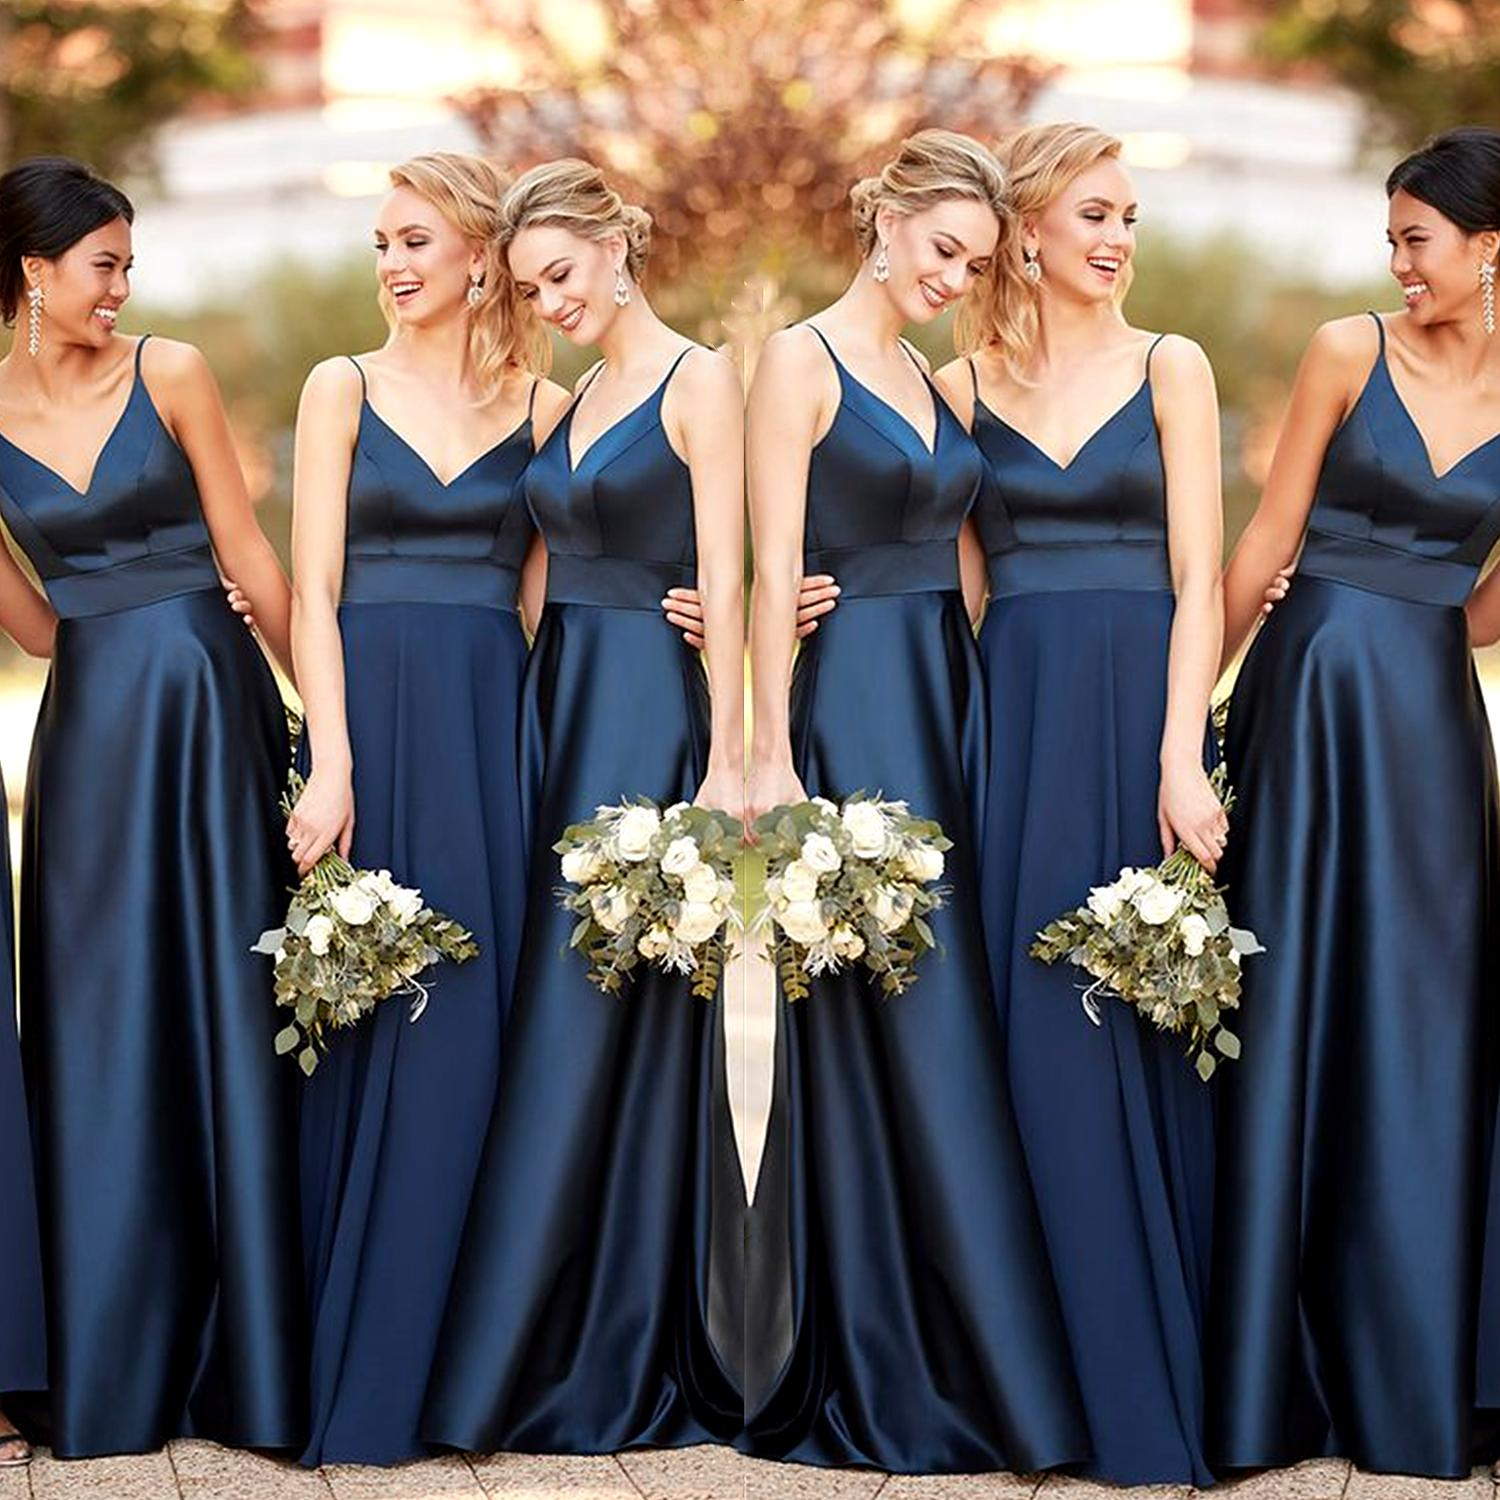 Navy Blue Bridesmaid Dresses Long 2020 A Line Satin Spaghetti Straps Wedding Guest Party Dress For Bridesmaid Maid Of Honor Dresses Bridesmaid Dresses Gowns Highstreet Bridesmaid Dresses From Wholesalefactory 80 17 Dhgate Com